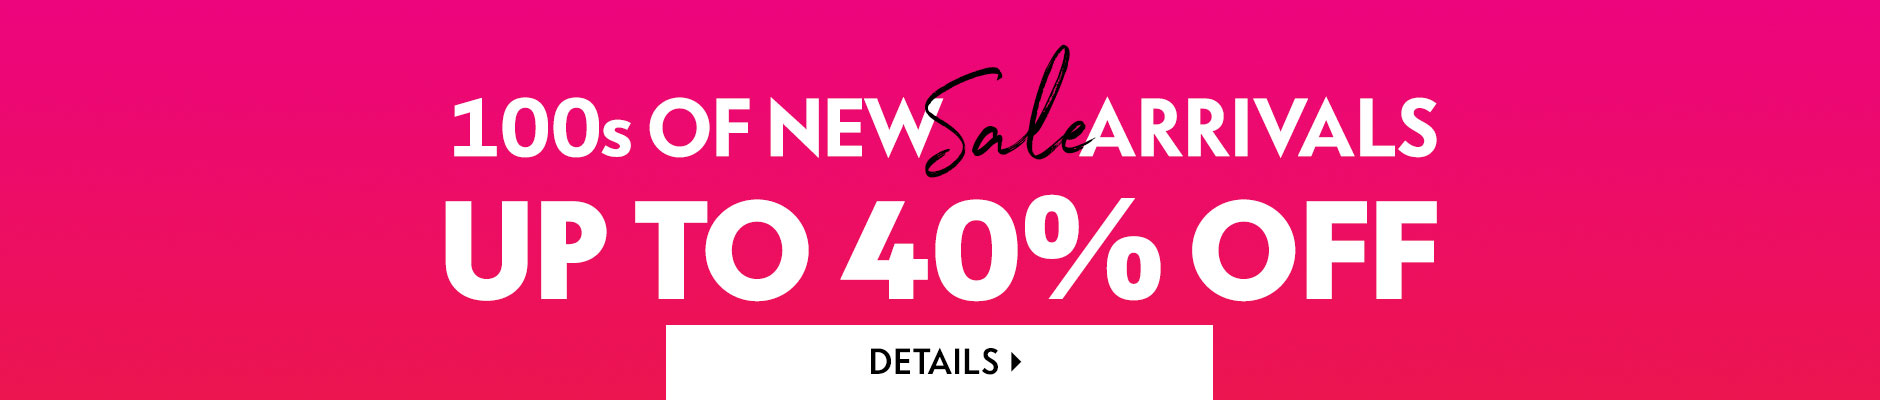 Online & In Stores: 100s of new sale arrivals - Up to 40% off